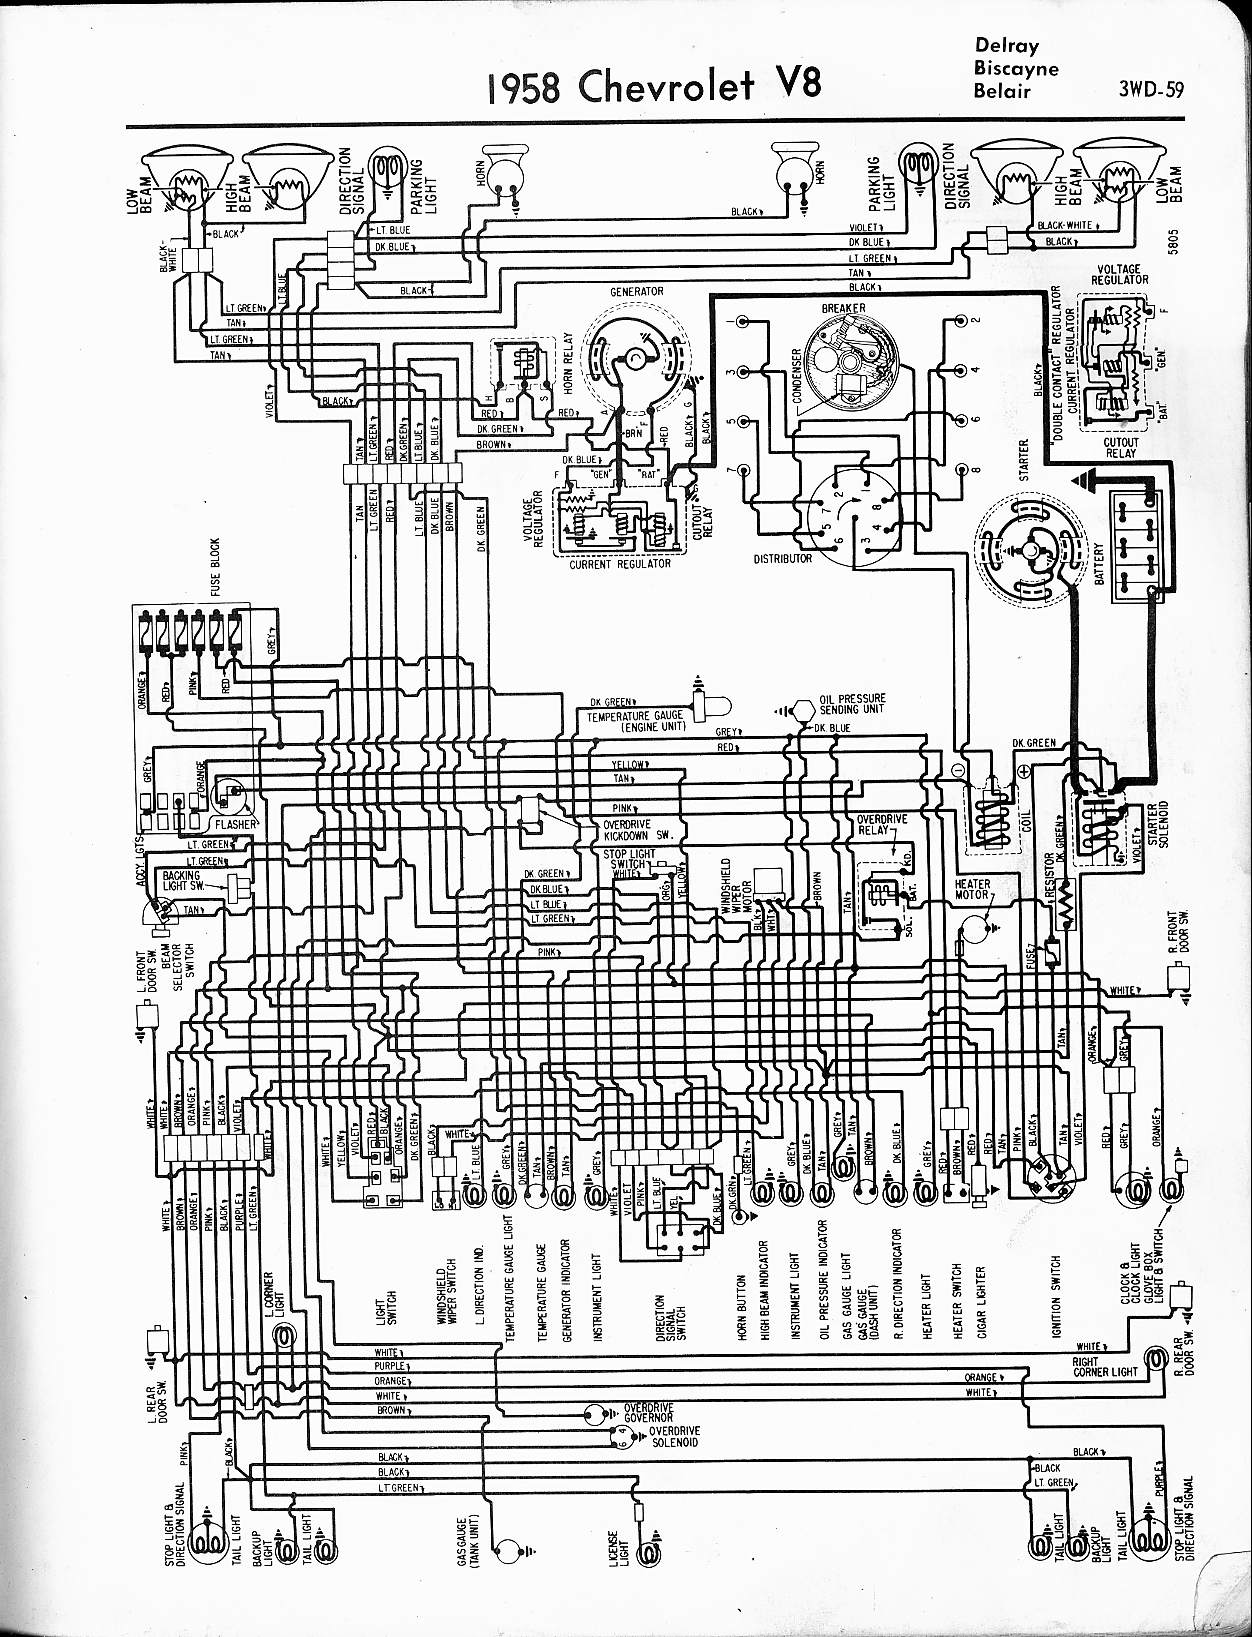 MWireChev58_3WD 059 57 65 chevy wiring diagrams chevy wiring schematics at mifinder.co